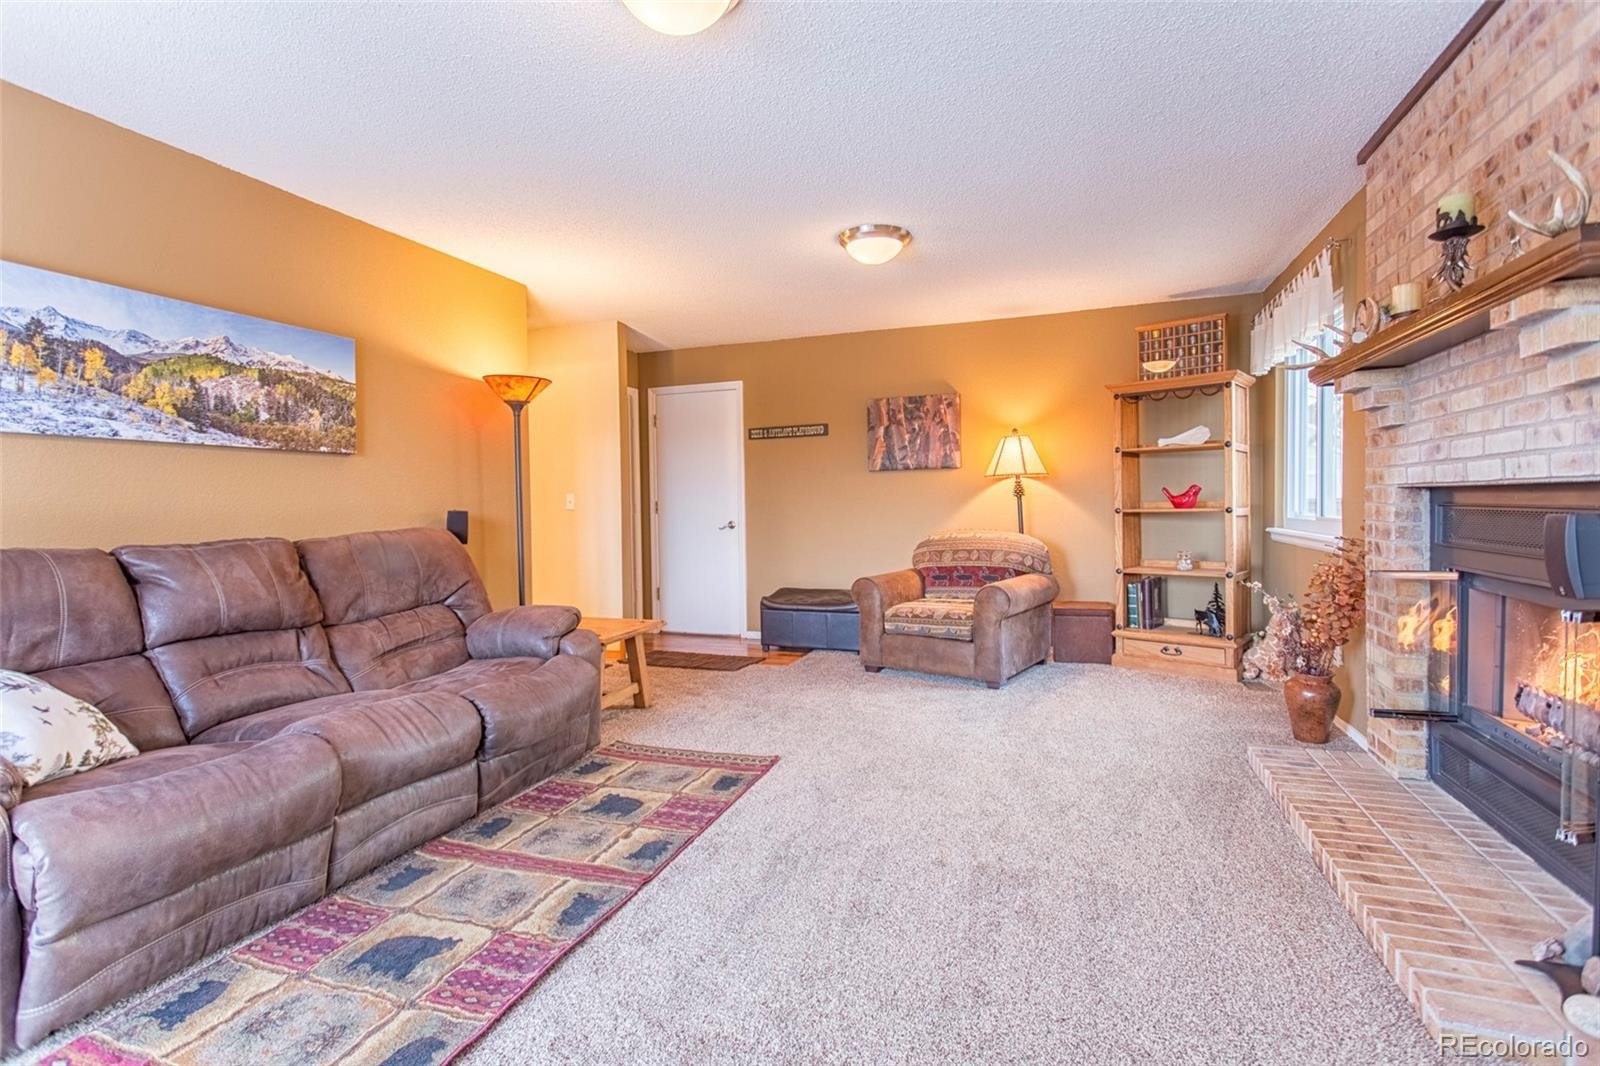 MLS# 8627962 - 9 - 431 Snowy Owl Place, Highlands Ranch, CO 80126